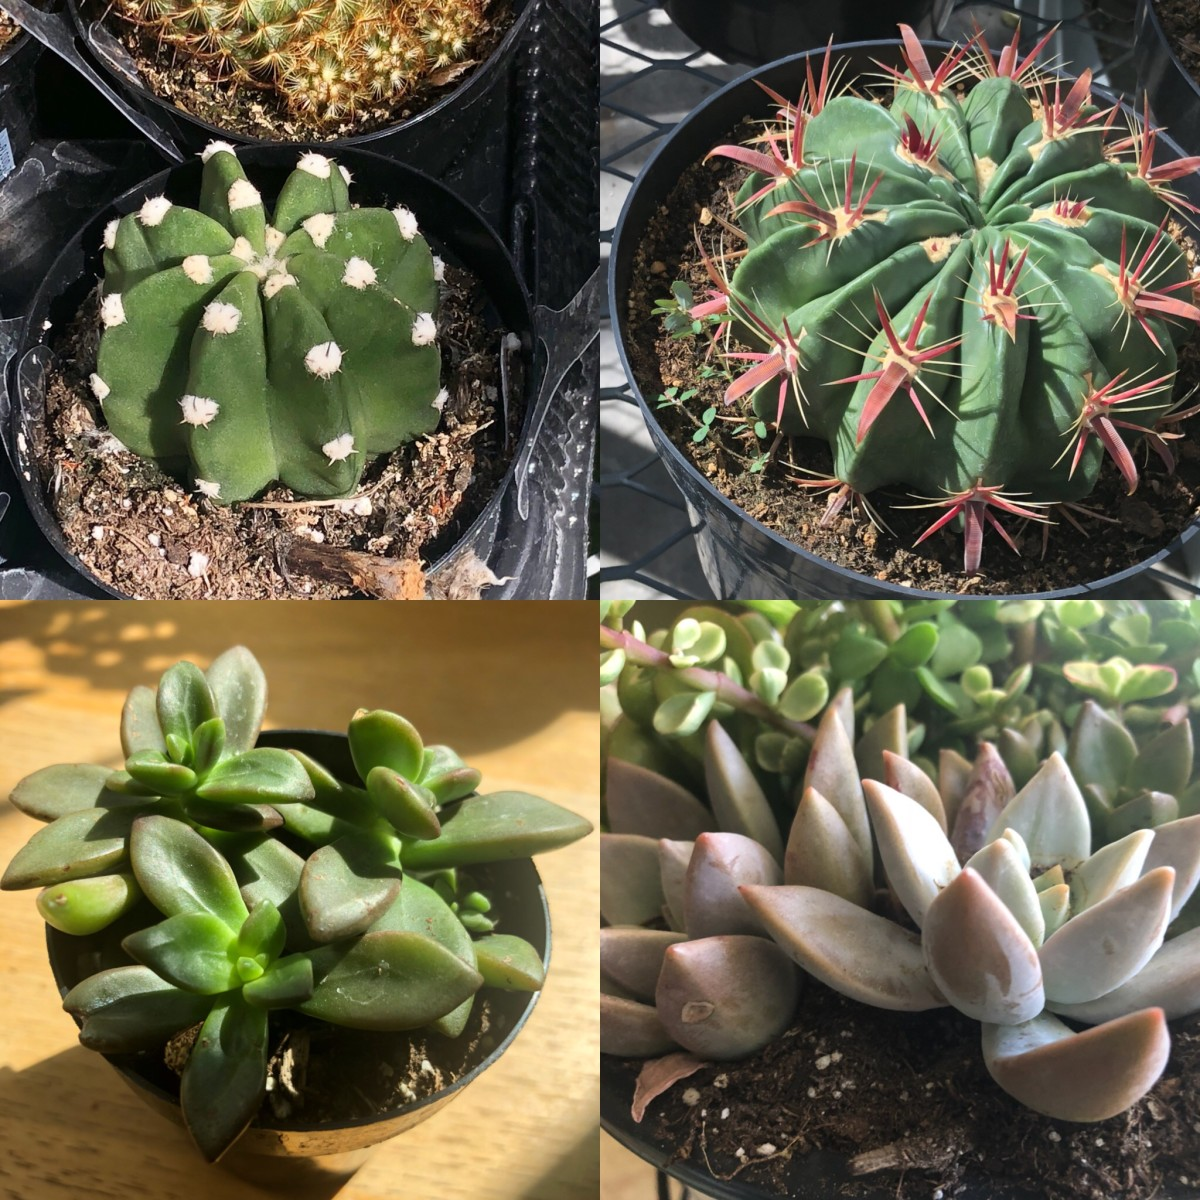 Top pictures: cacti. Bottom pictures: succulents.